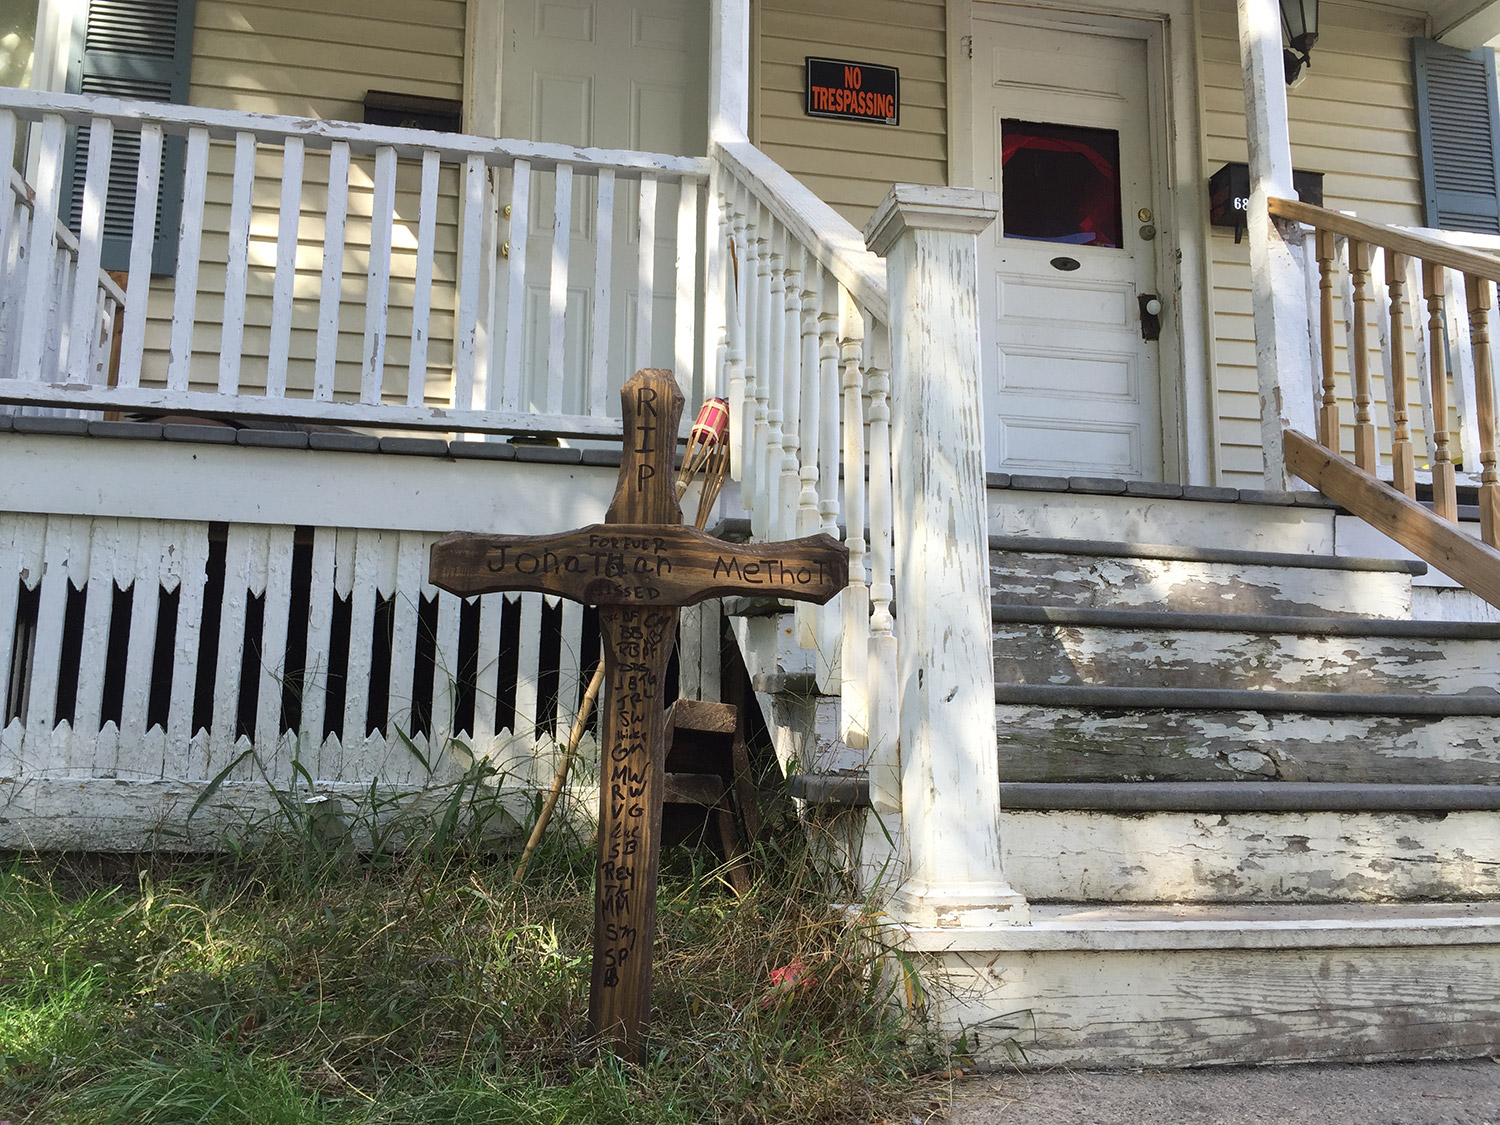 A memorial was erected outside the Biddeford duplex where Jonathan Methot, 30, was shot and killed about 1 a.m. on Sept. 26. Timothy Ortiz, 20, of Brooklyn, N.Y., appeared in court Monday to face a murder charge.